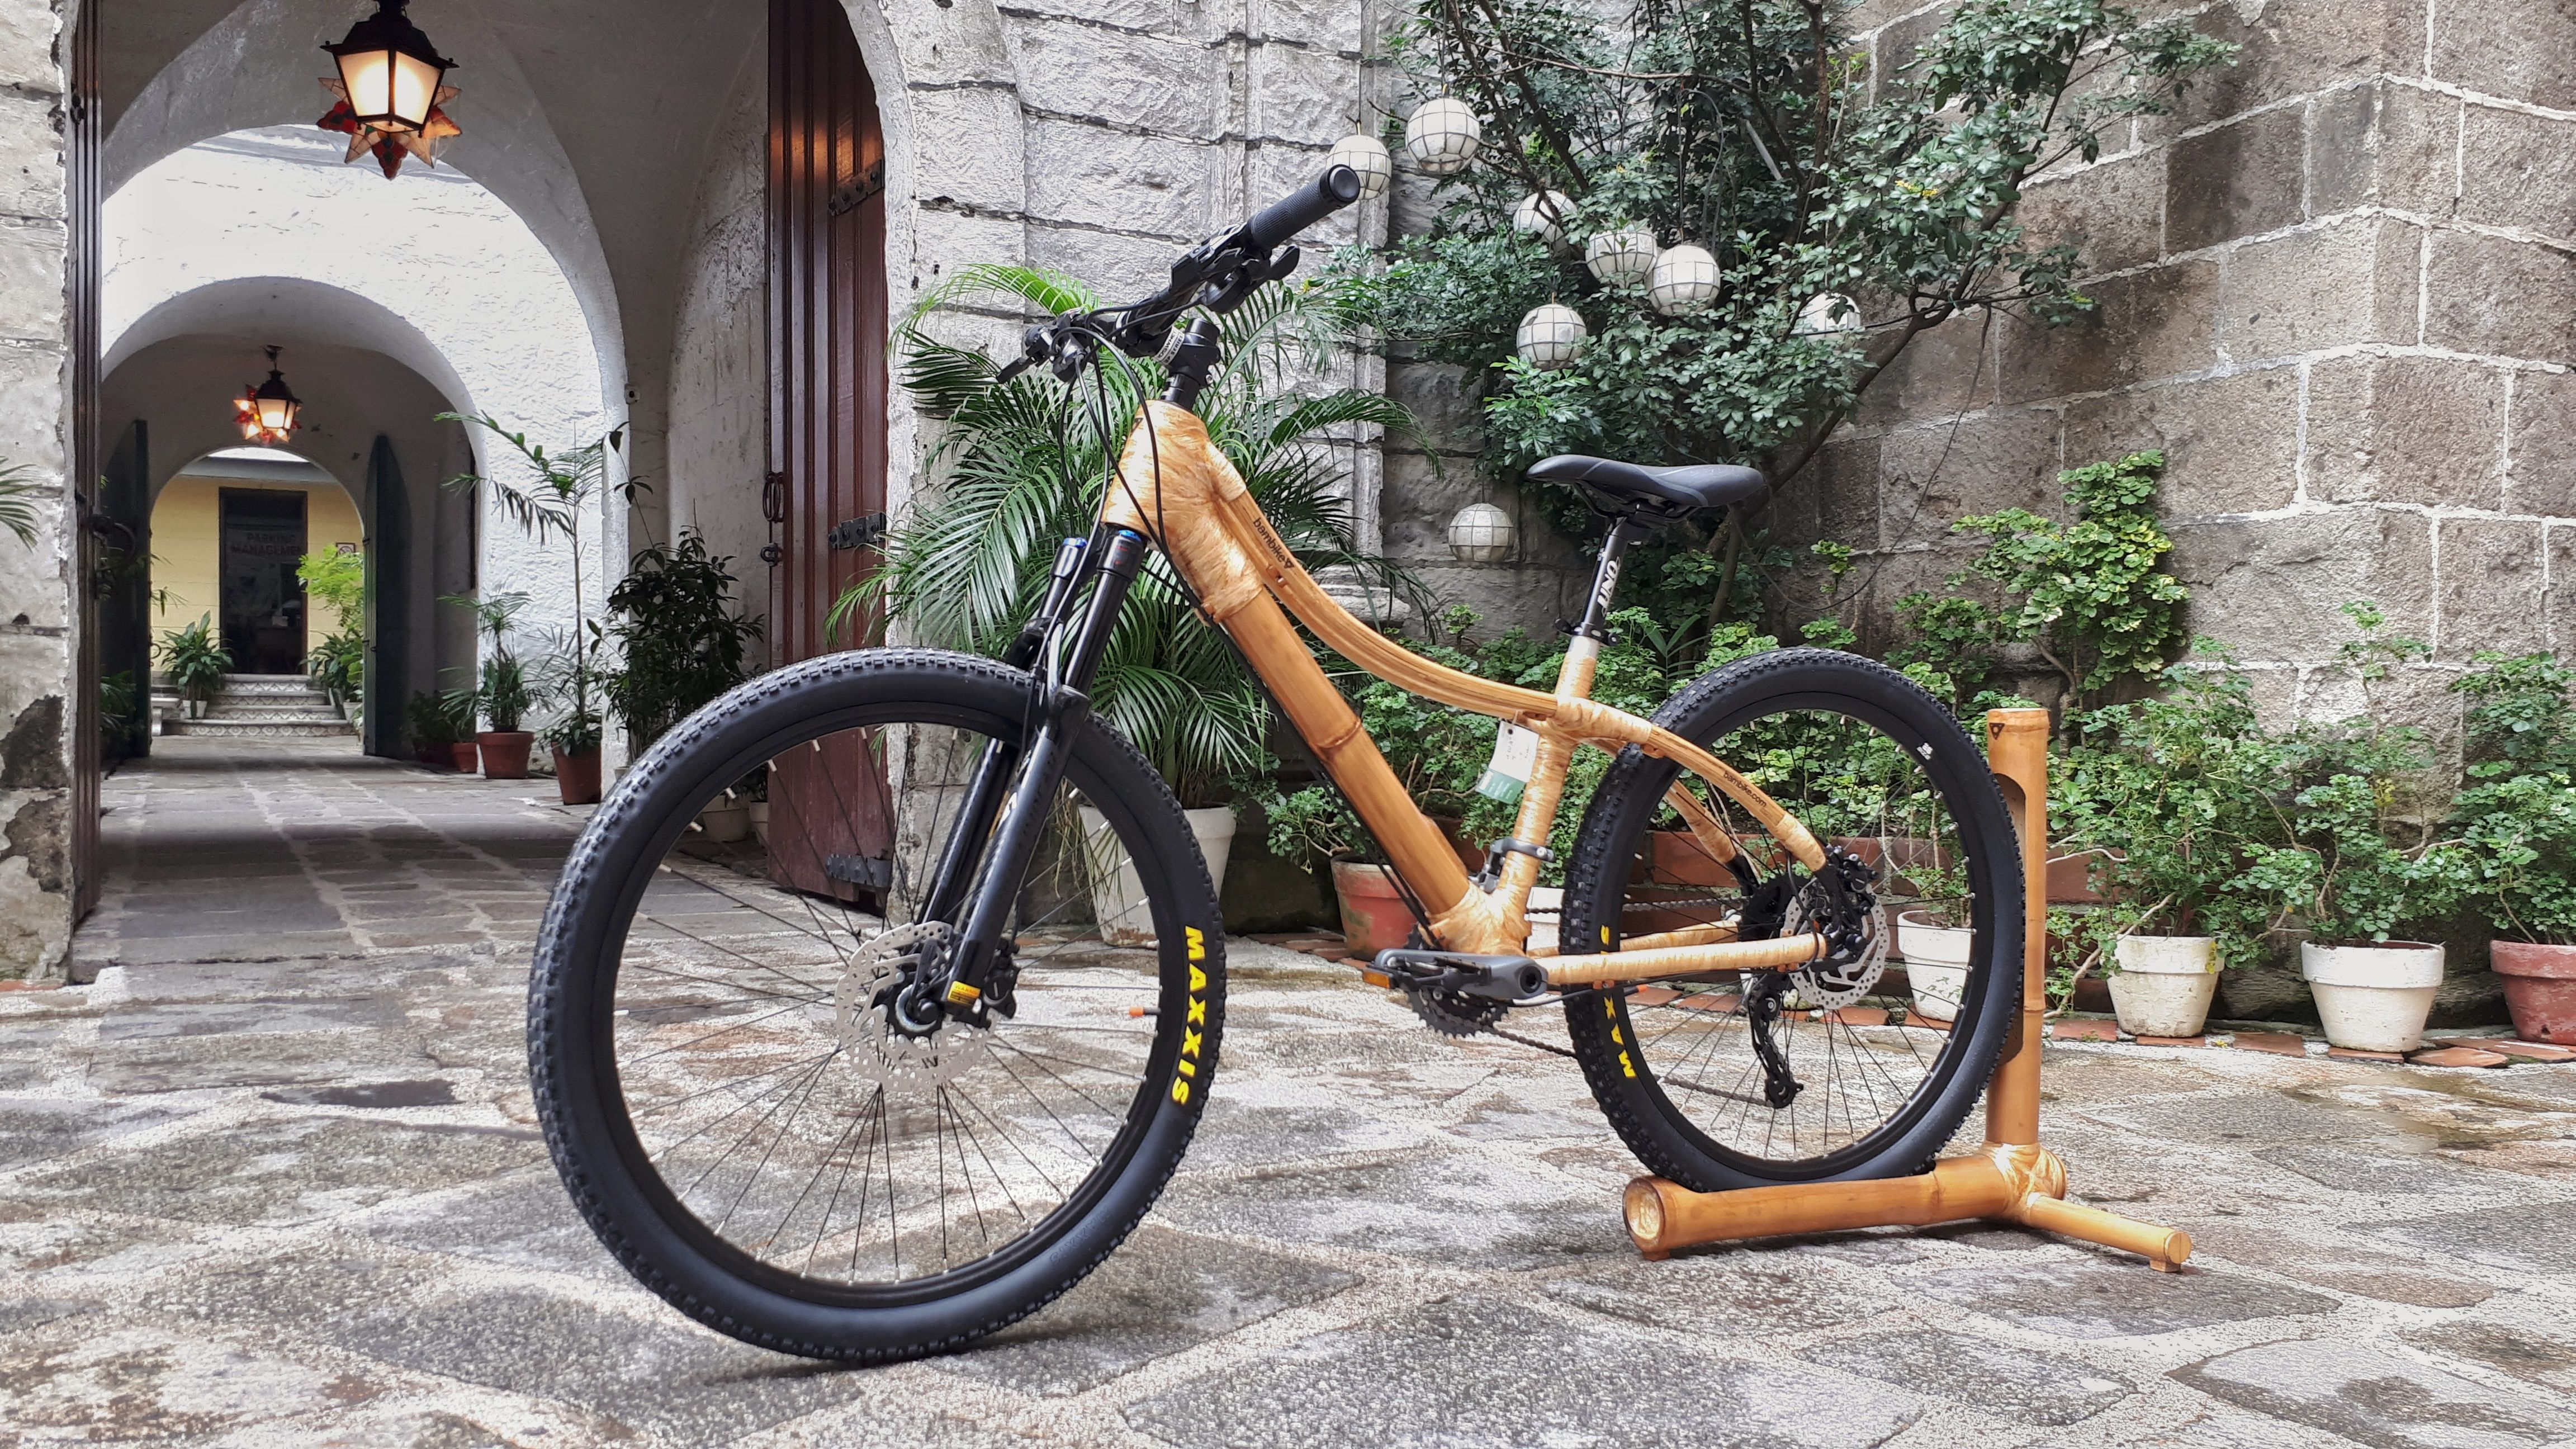 A Mountain Bike That Could Be Use For Trails Double Top Tube